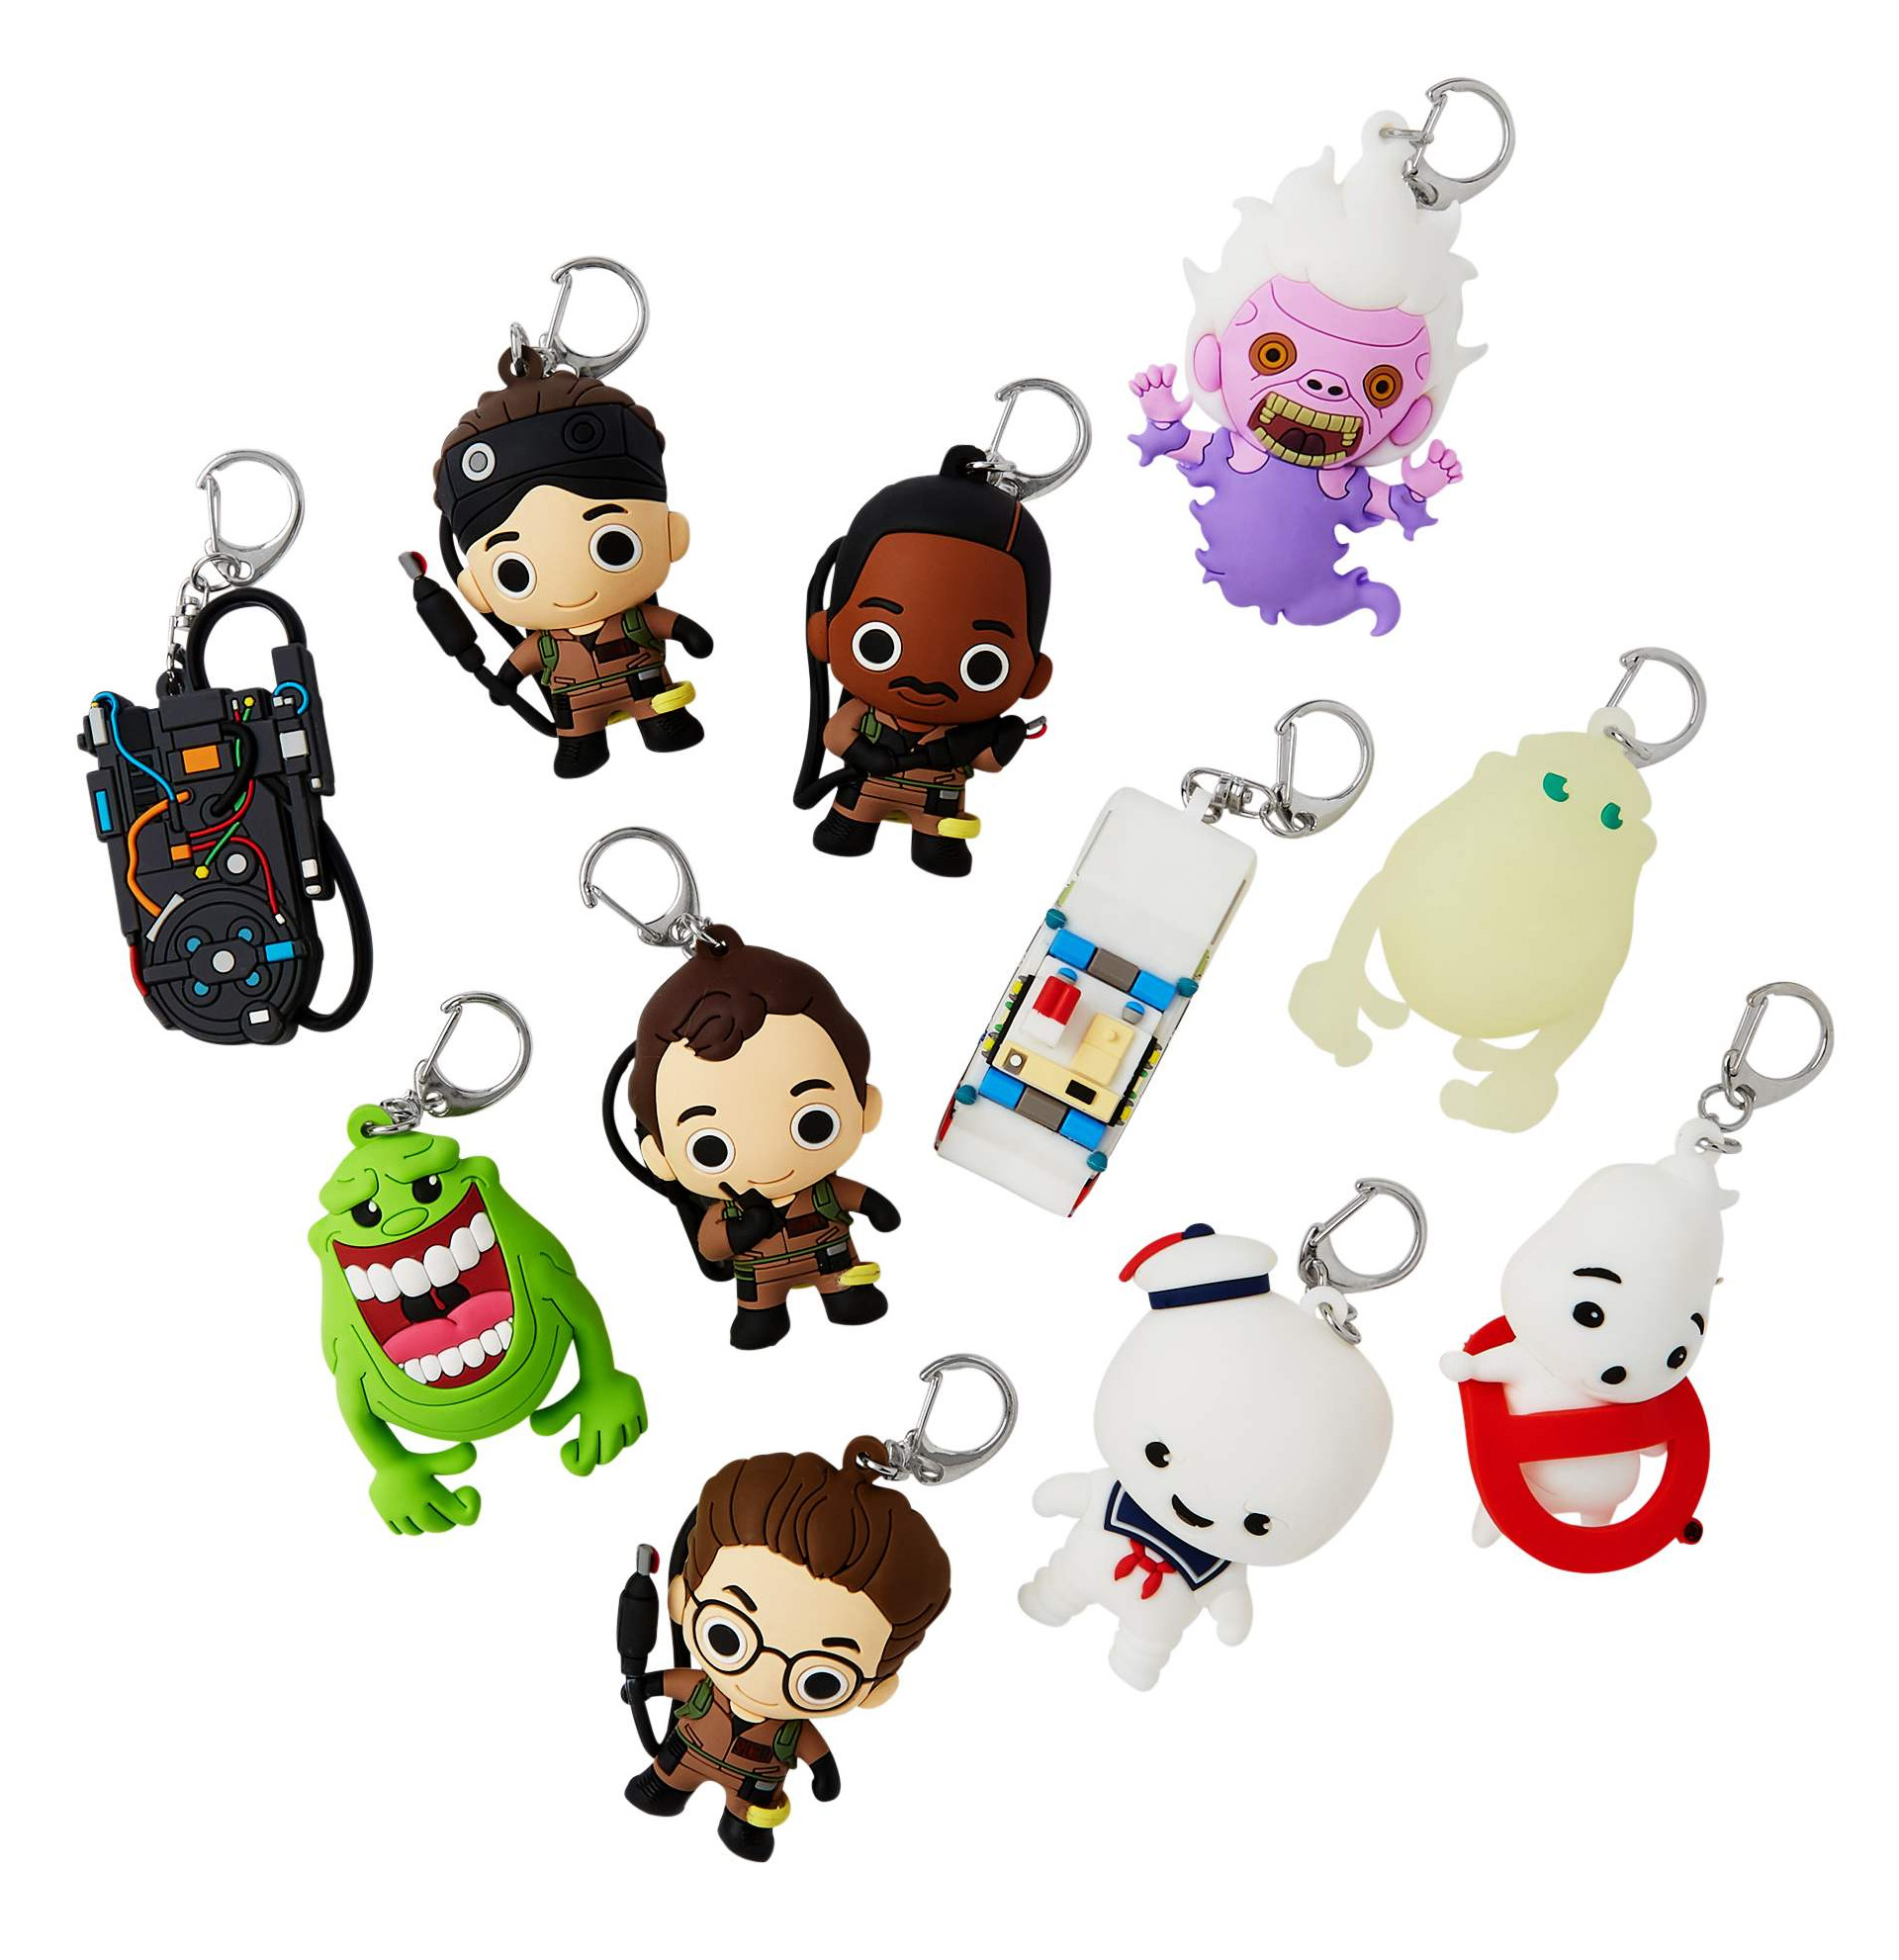 Spirit Halloween: Ghostbusters Blind Pack Figures